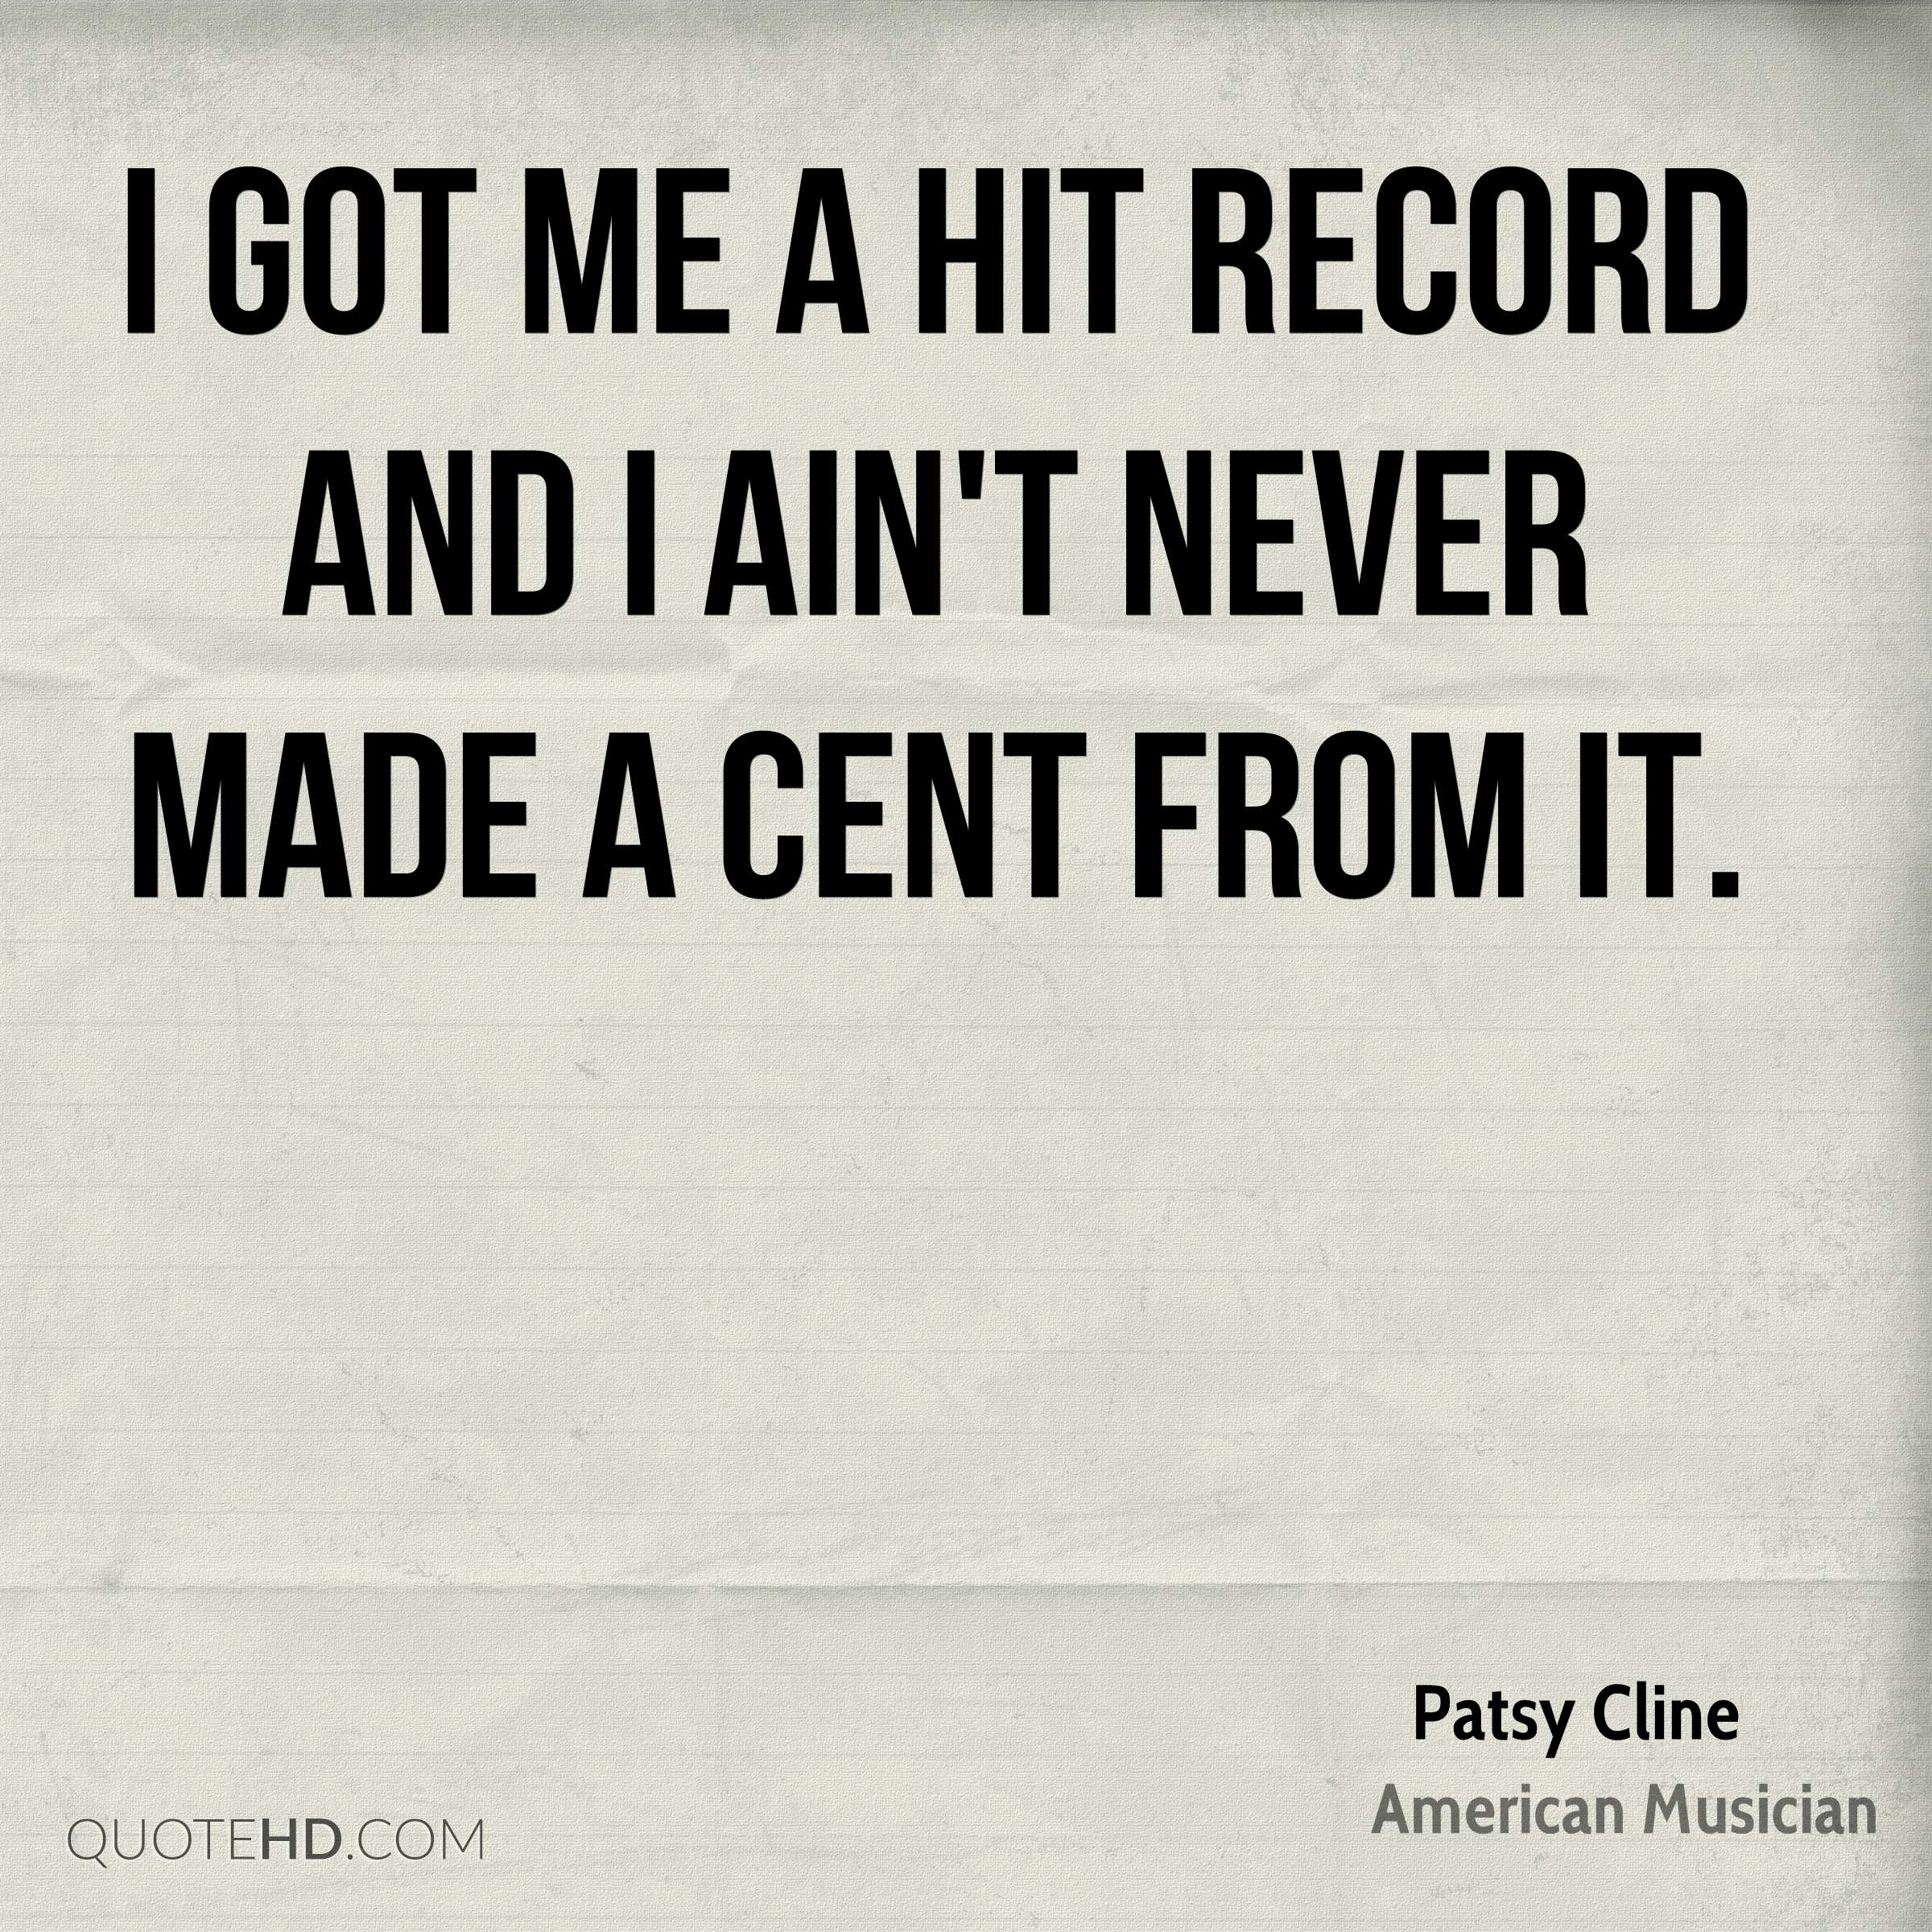 I got me a hit record and I ain't never made a cent from it.